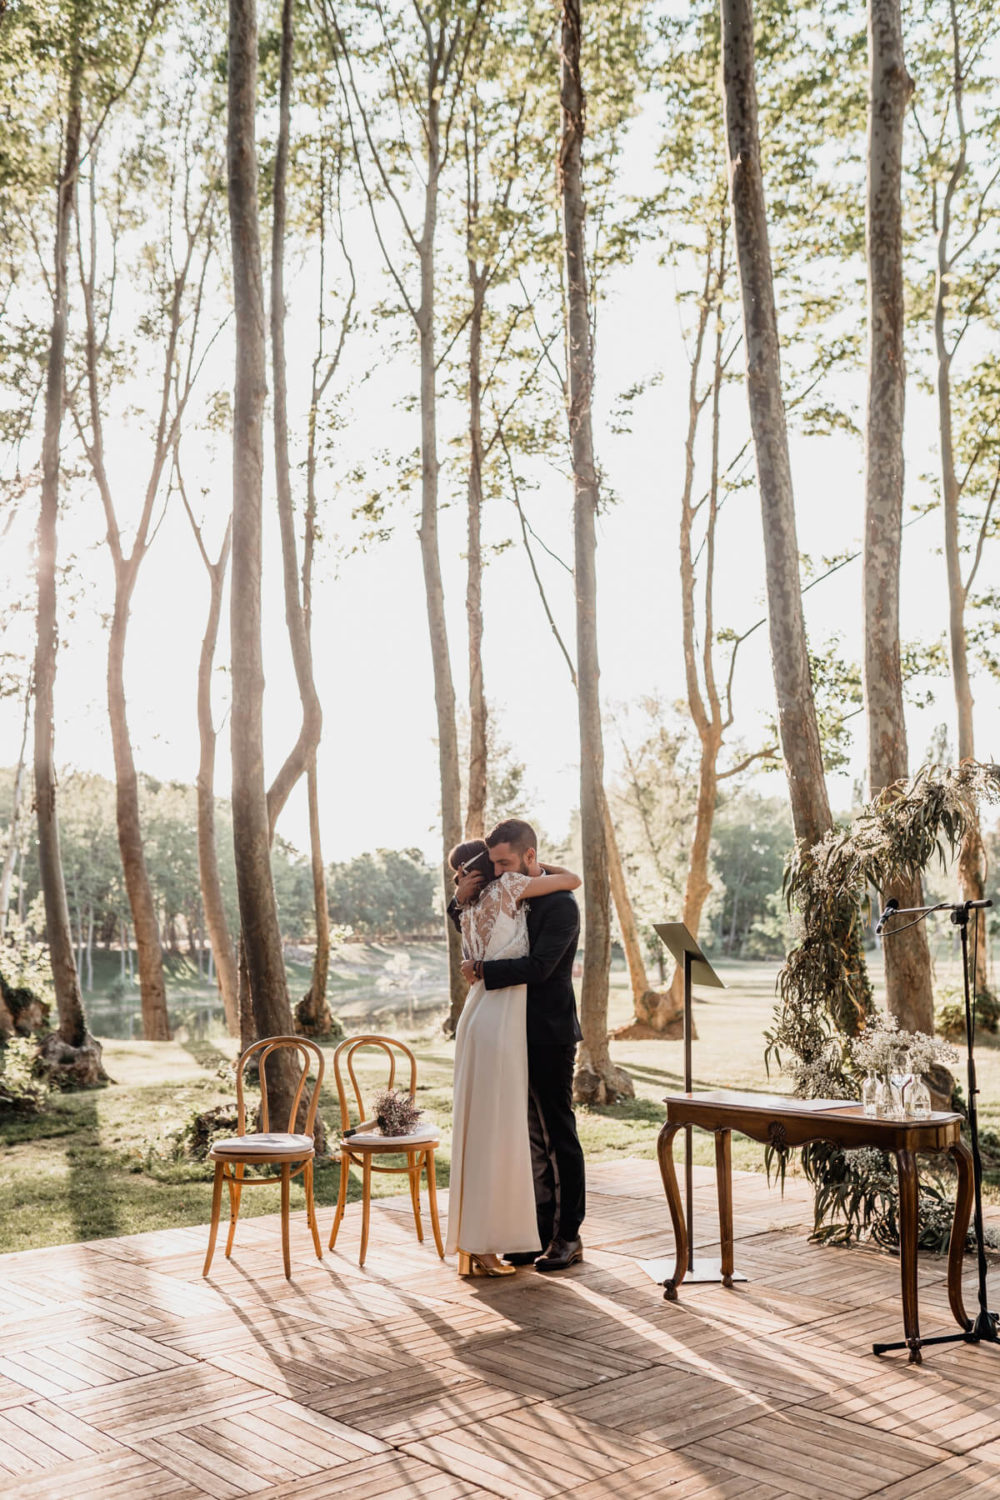 Wedding photographer Barcelona Spain natural candid Photo Anna Svobodova